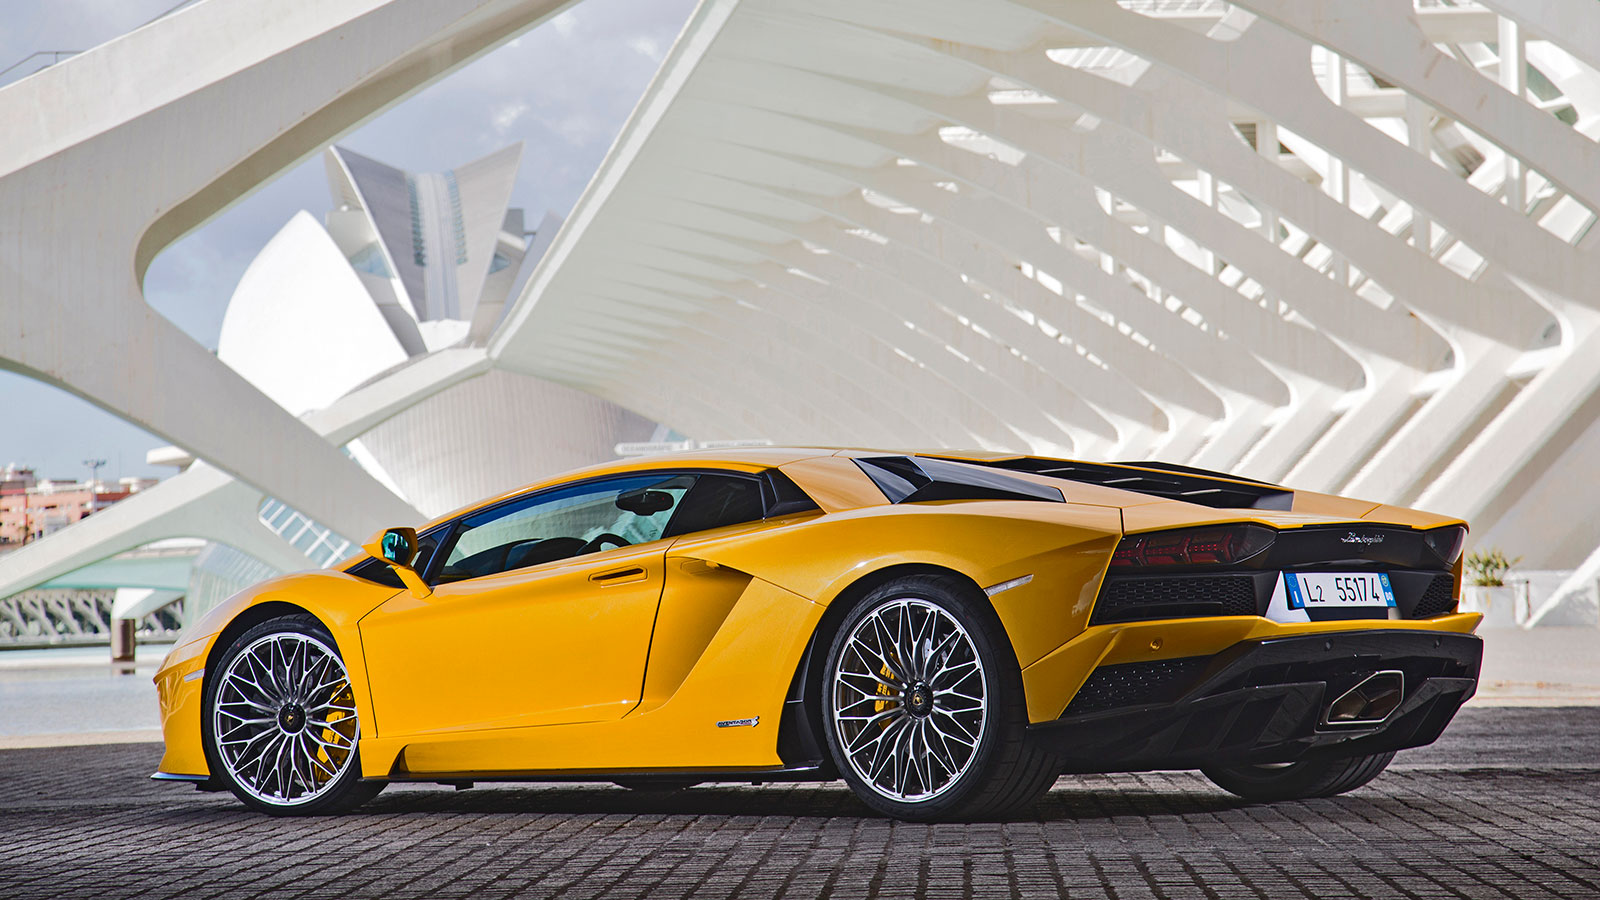 Lamborghini Aventador S Coupe - The Icon Reborn image 8